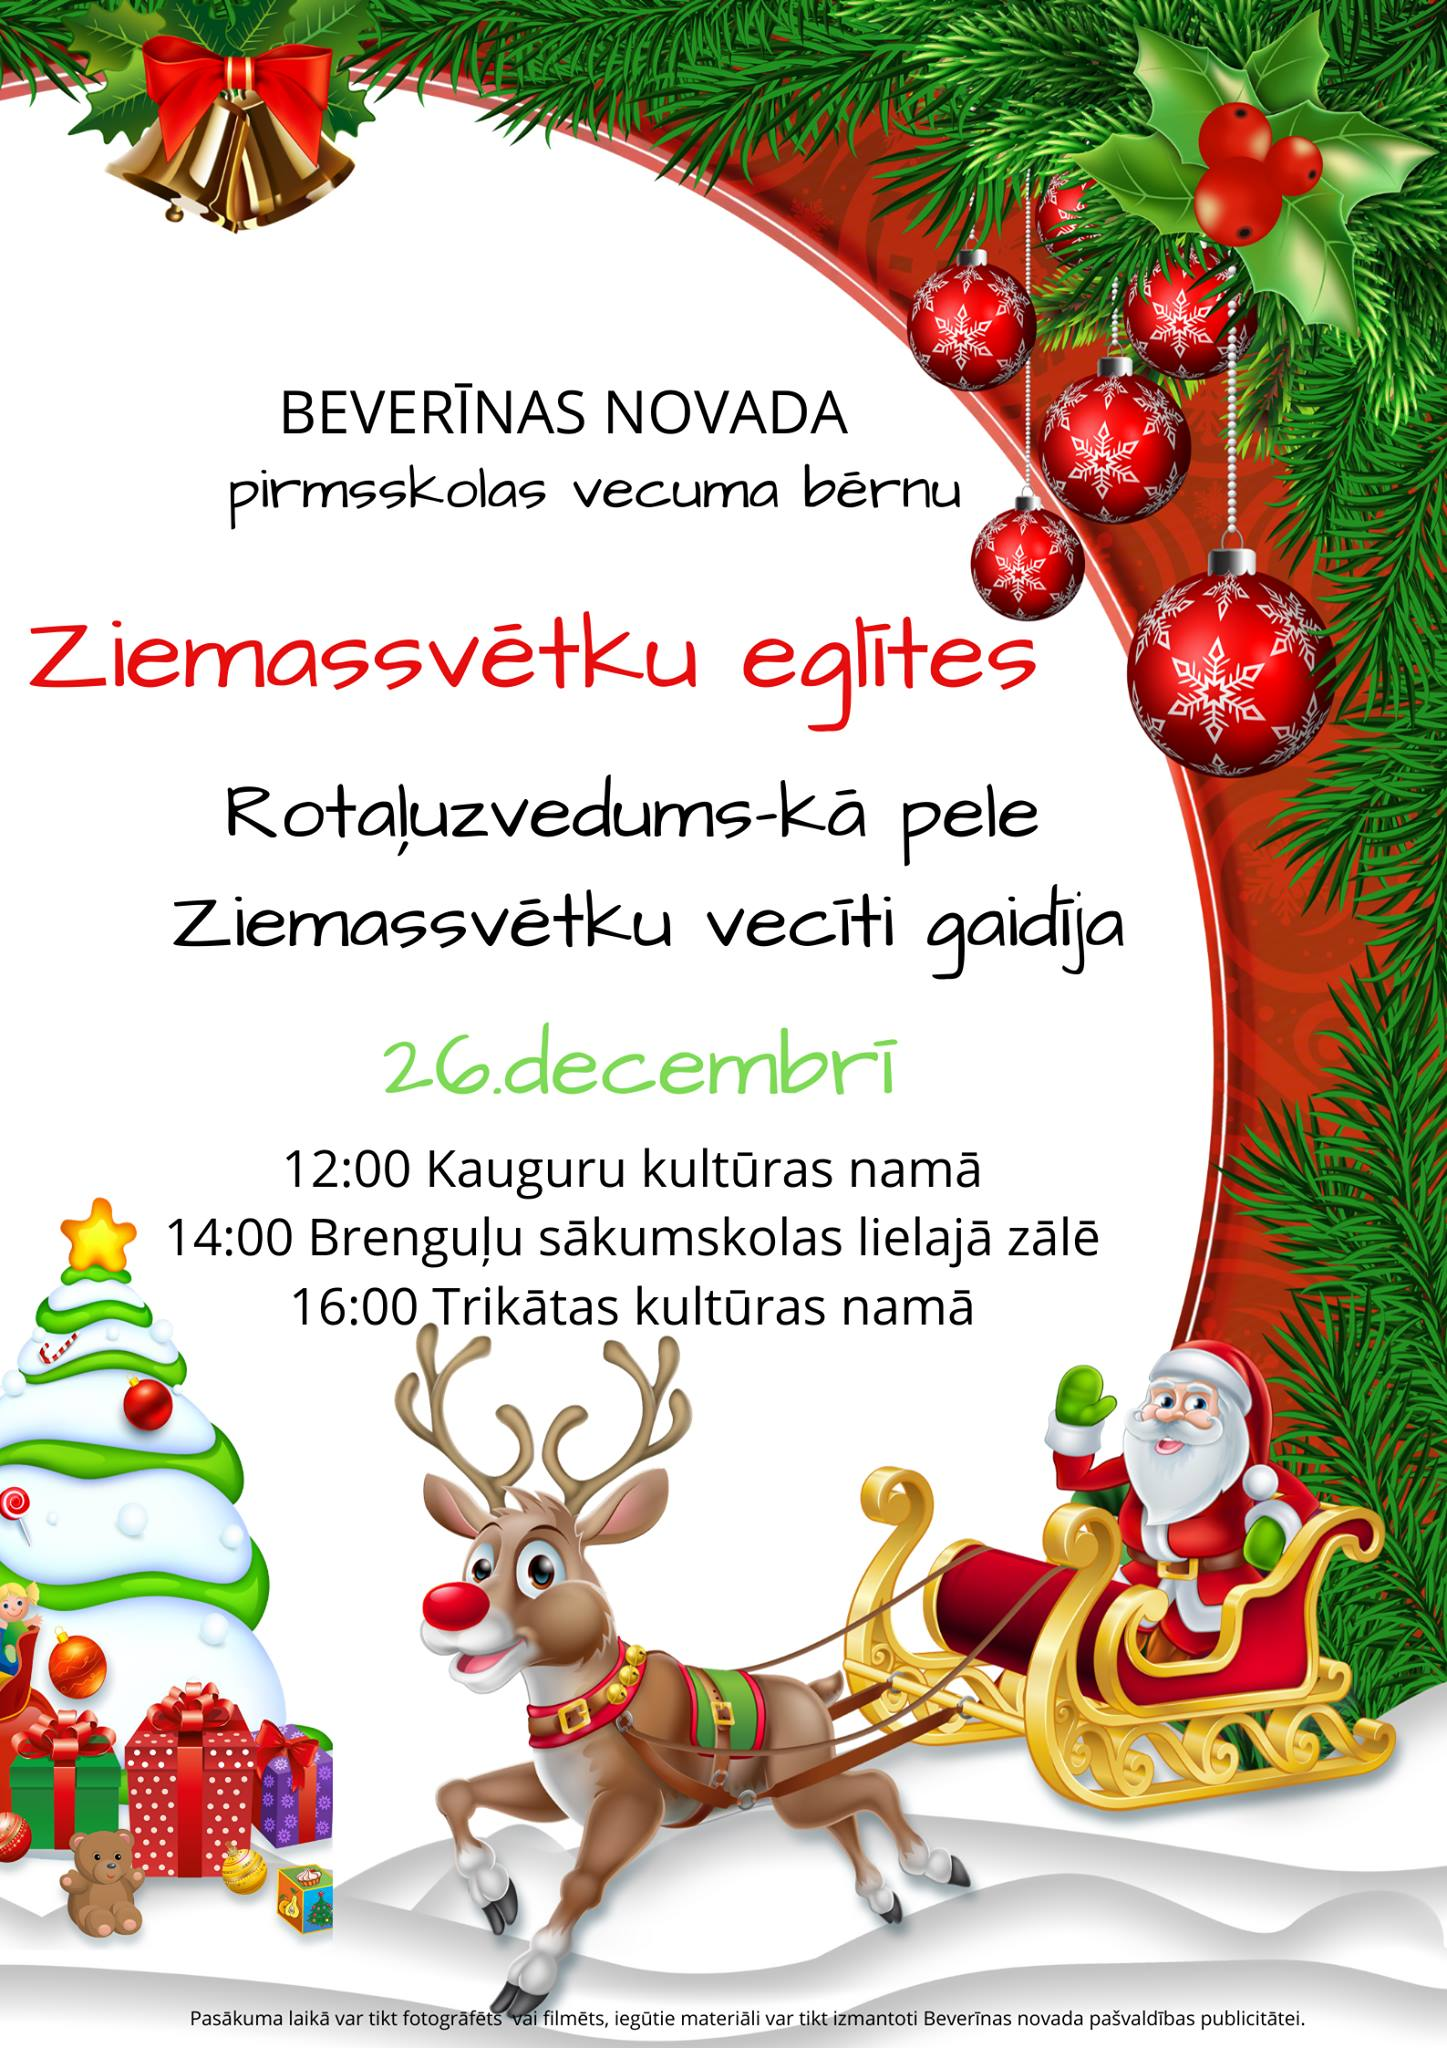 Zsv Rotaluzvedums 26dec2019 ml